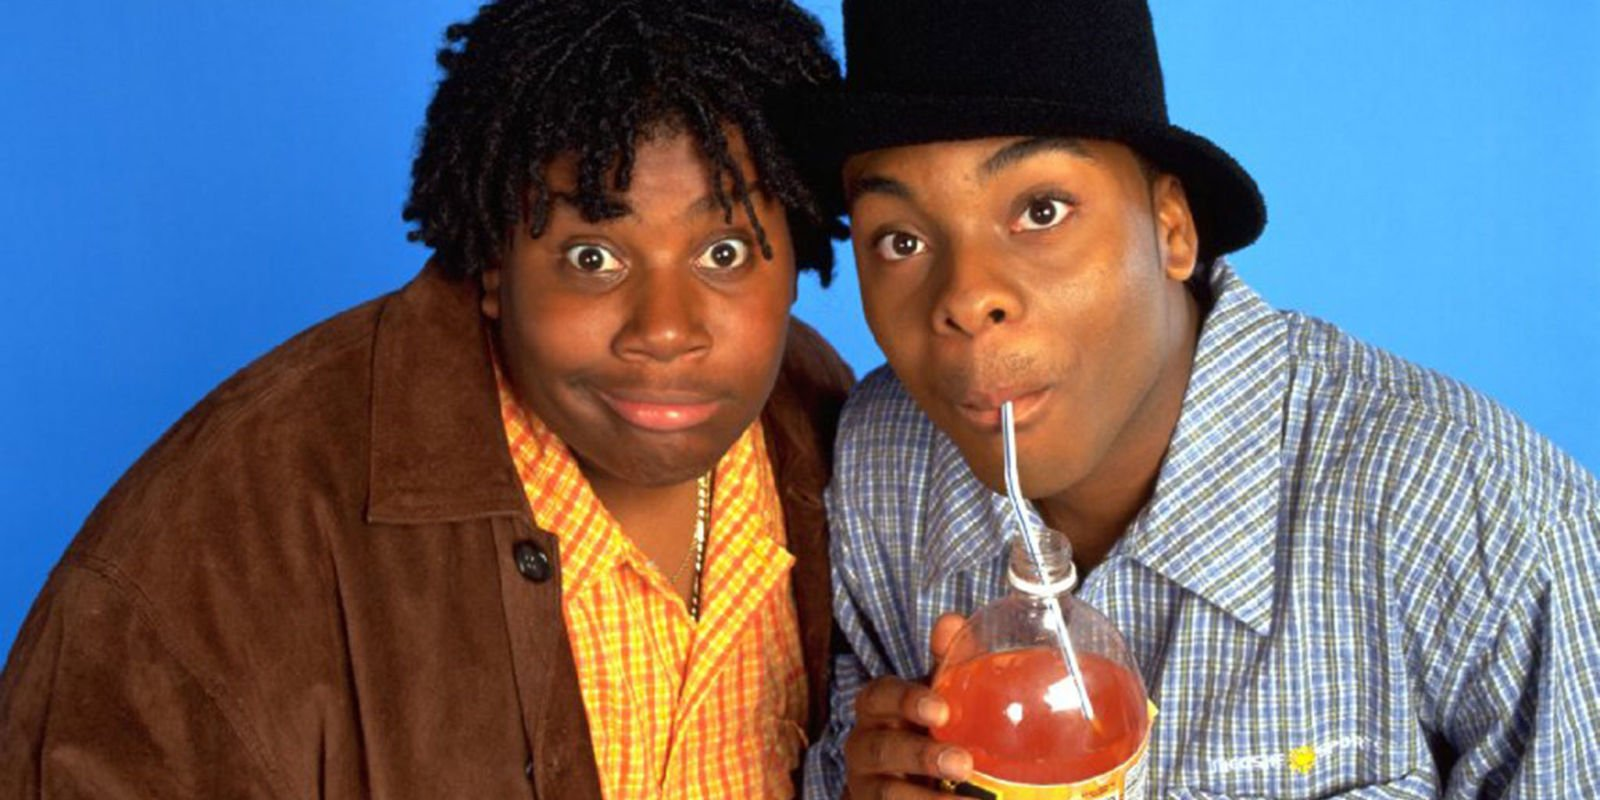 Kenan and Kel are reuniting for a one-off appearance on Nickelodeon… but there's a catch